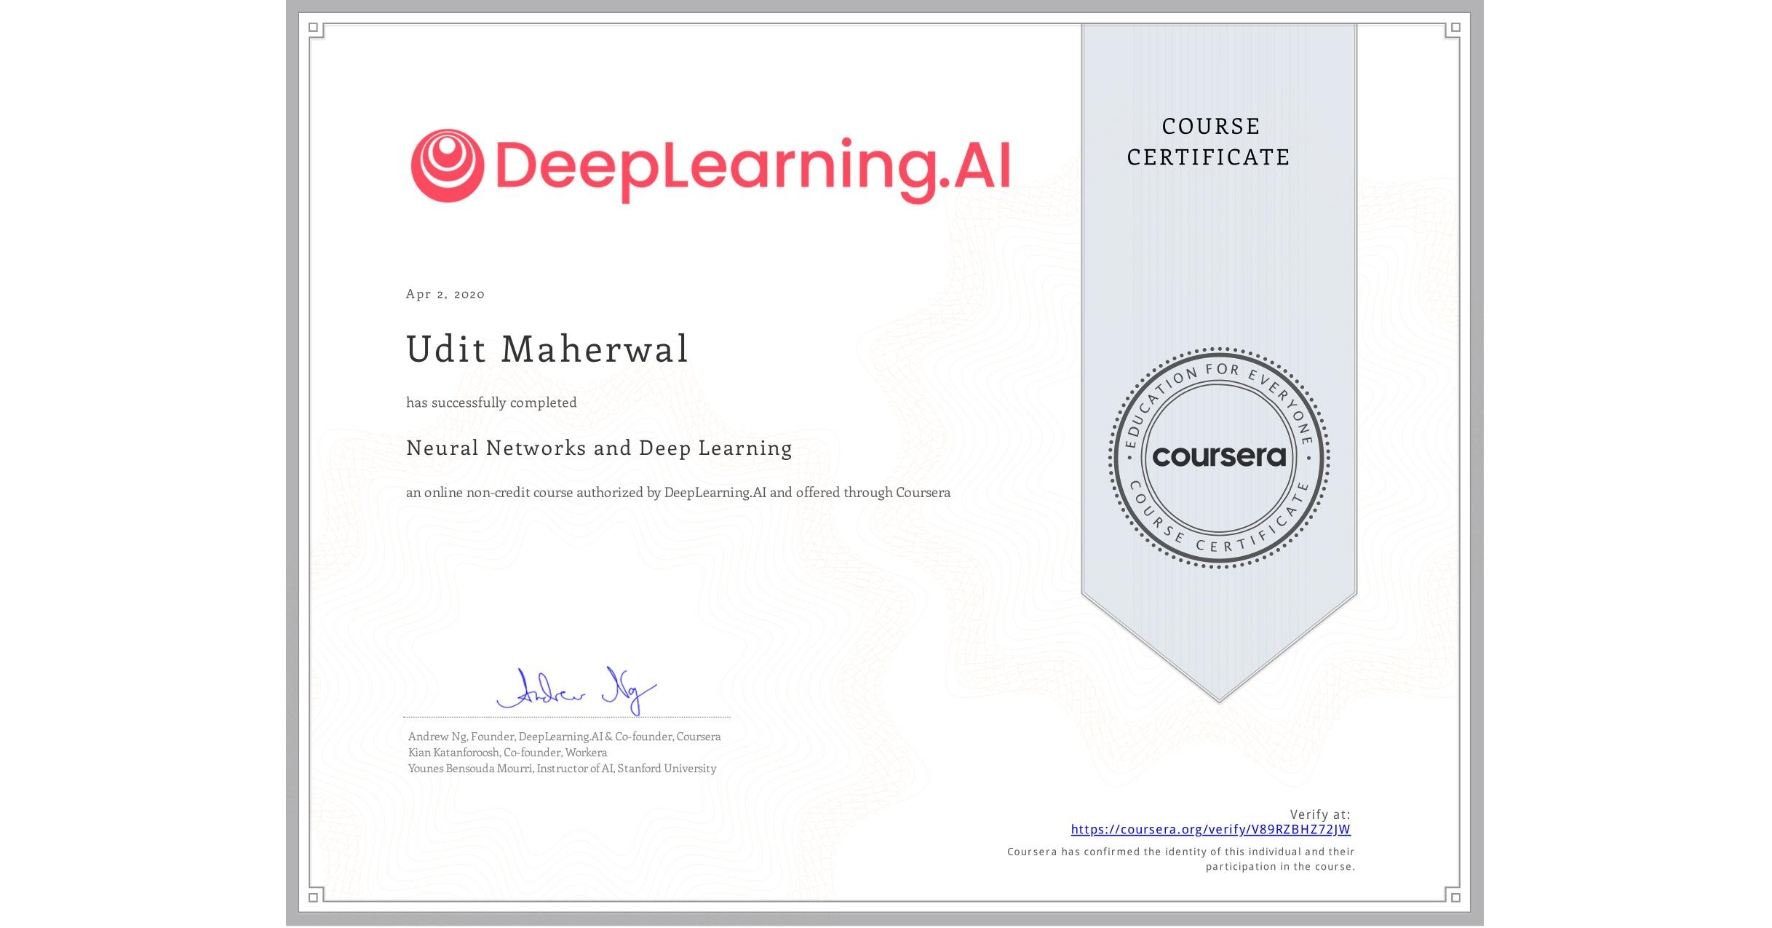 View certificate for Udit Maherwal, Neural Networks and Deep Learning, an online non-credit course authorized by DeepLearning.AI and offered through Coursera